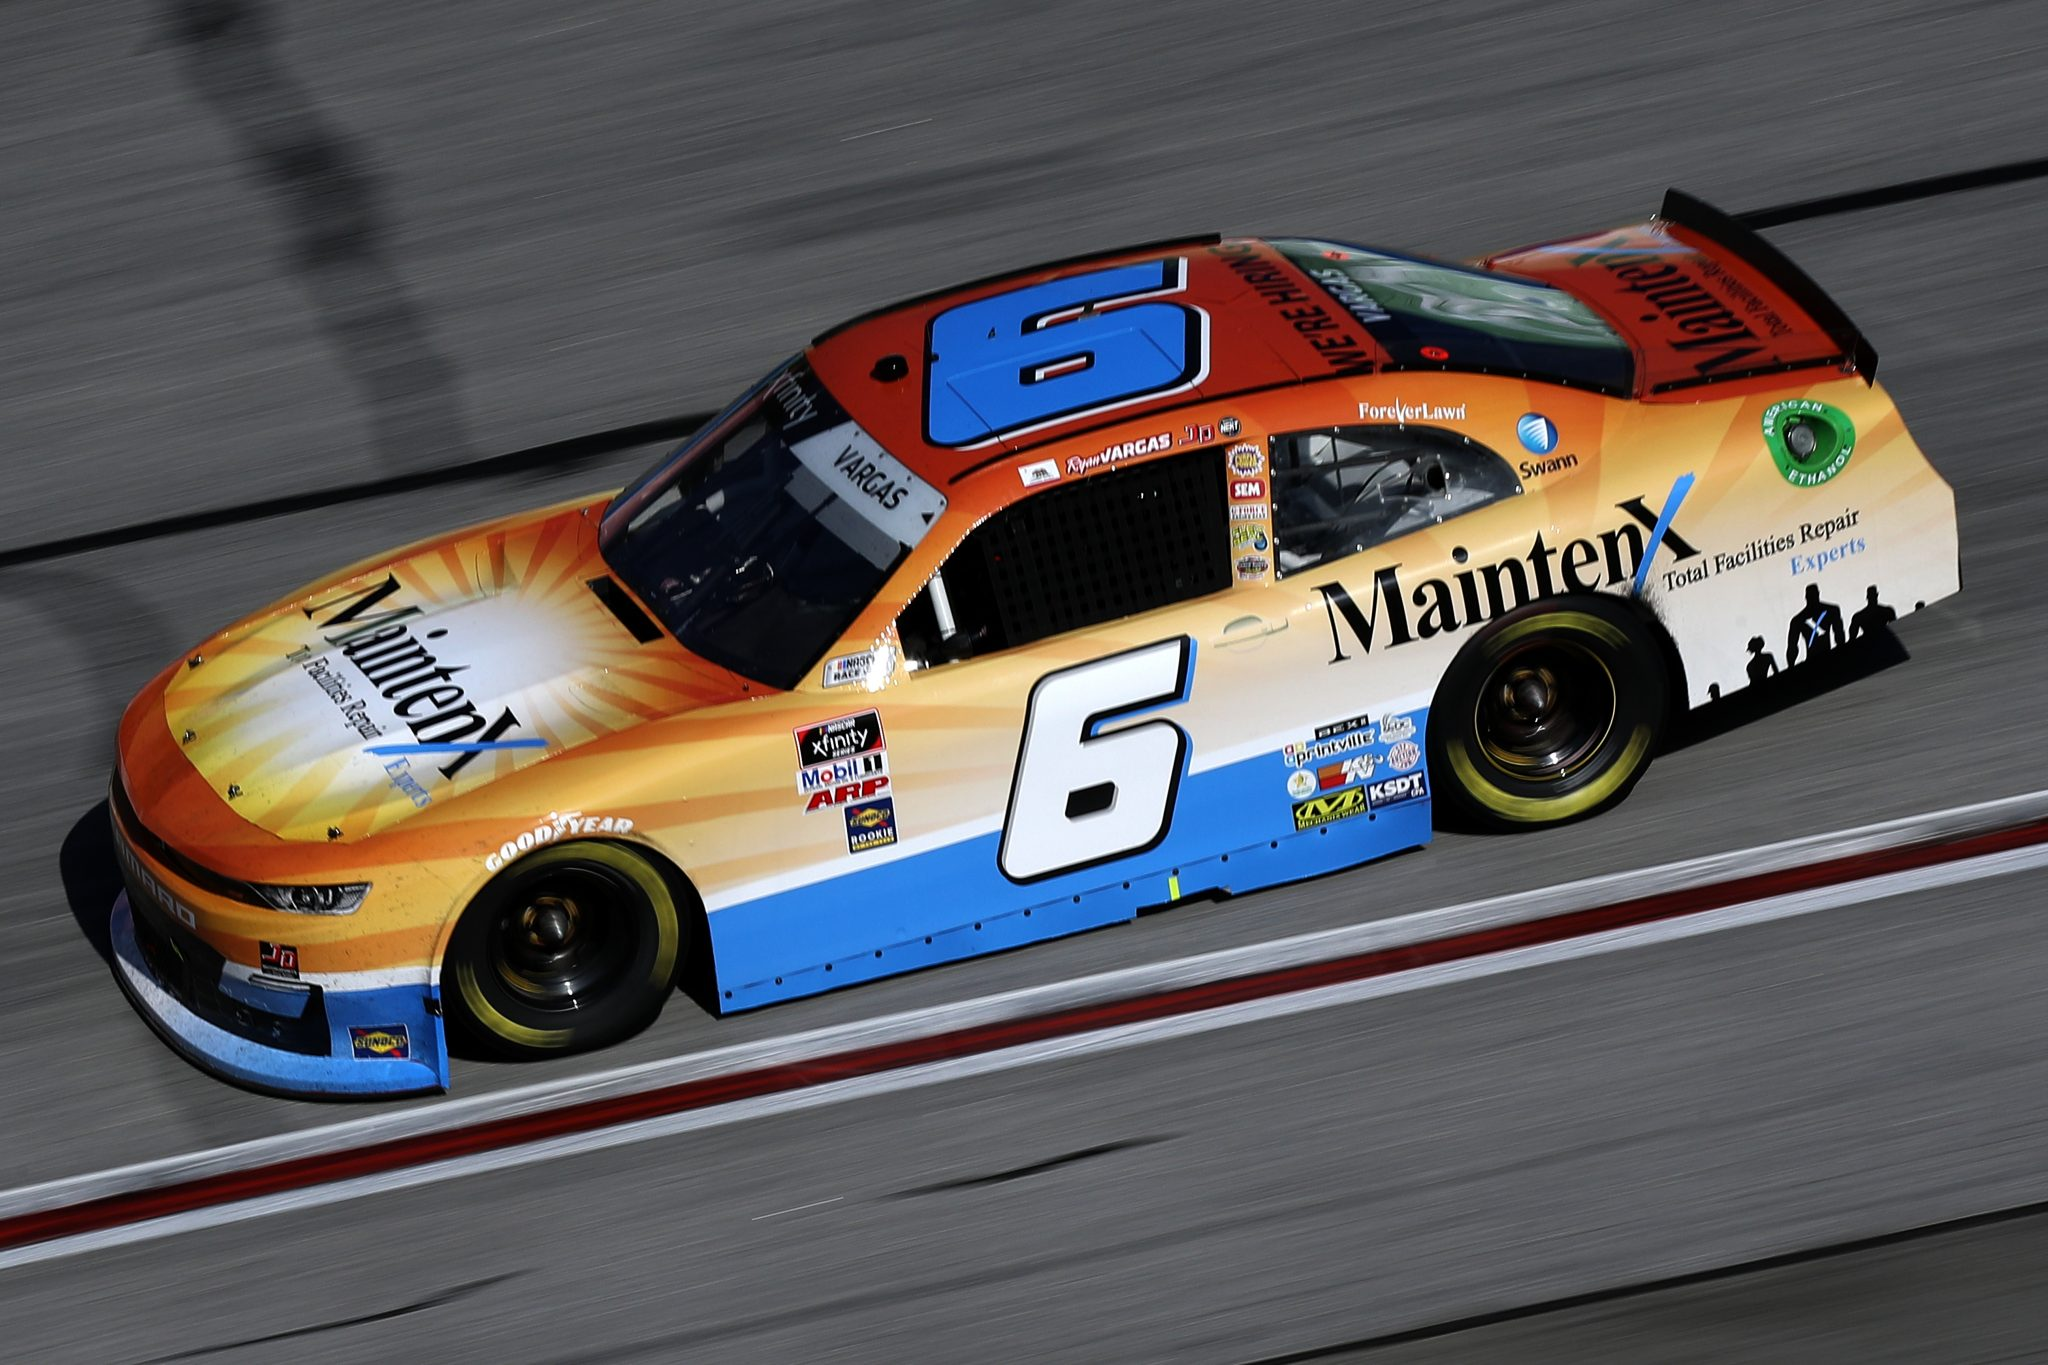 HAMPTON, GEORGIA - MARCH 20: Ryan Vargas, driver of the #6 MaintenX Chevrolet, drives during the NASCAR Xfinity Series EchoPark 250 at Atlanta Motor Speedway on March 20, 2021 in Hampton, Georgia. (Photo by Sean Gardner/Getty Images) | Getty Images